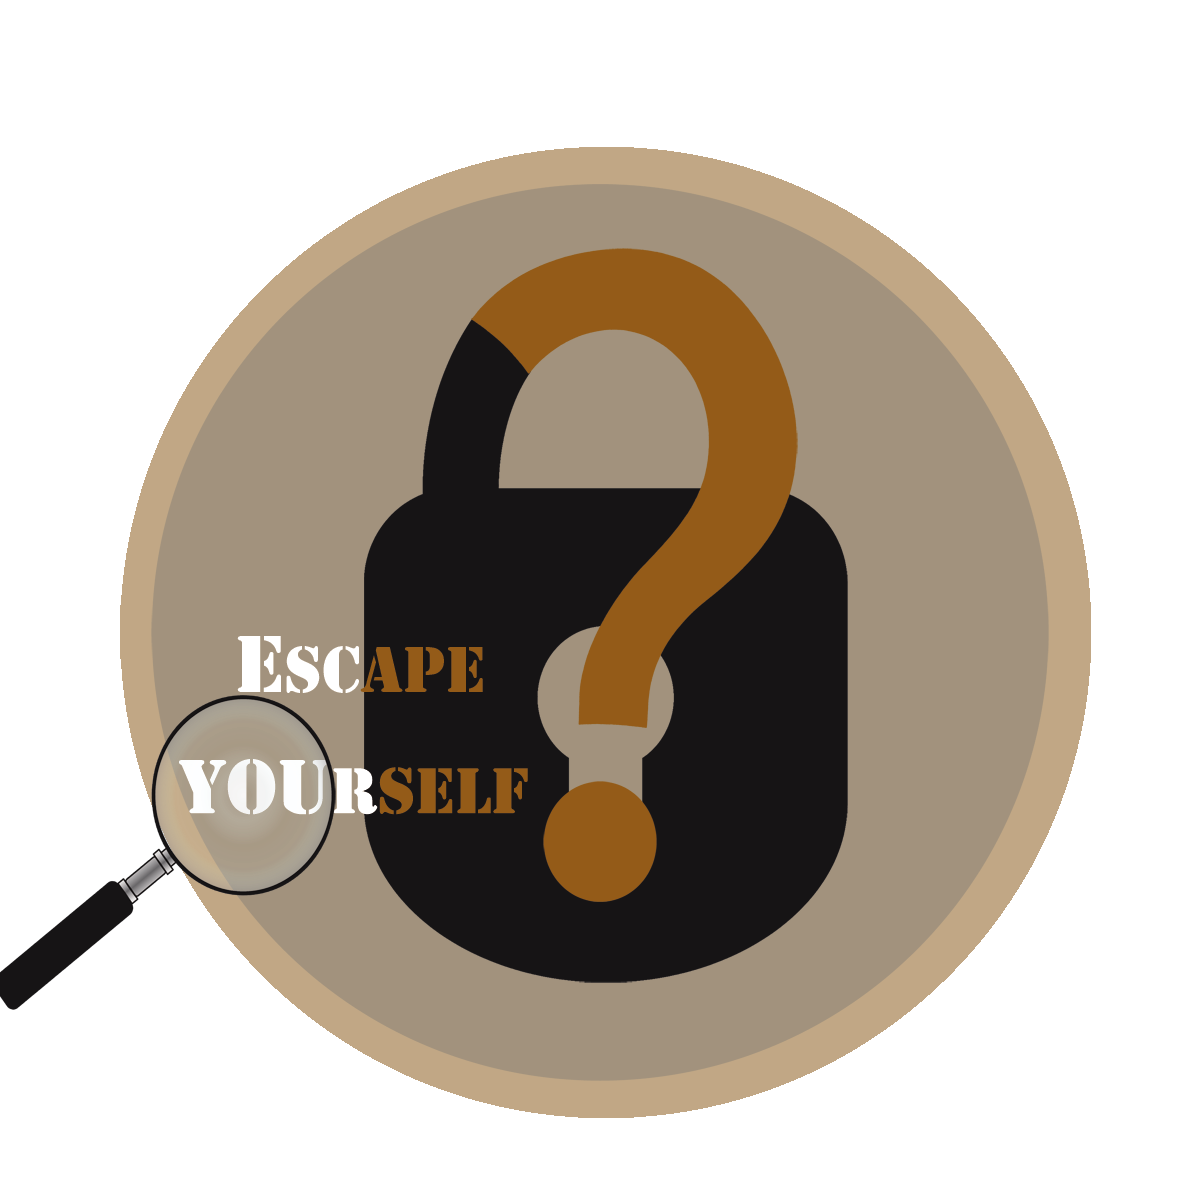 ESCAPE YOURSELF ANGERS